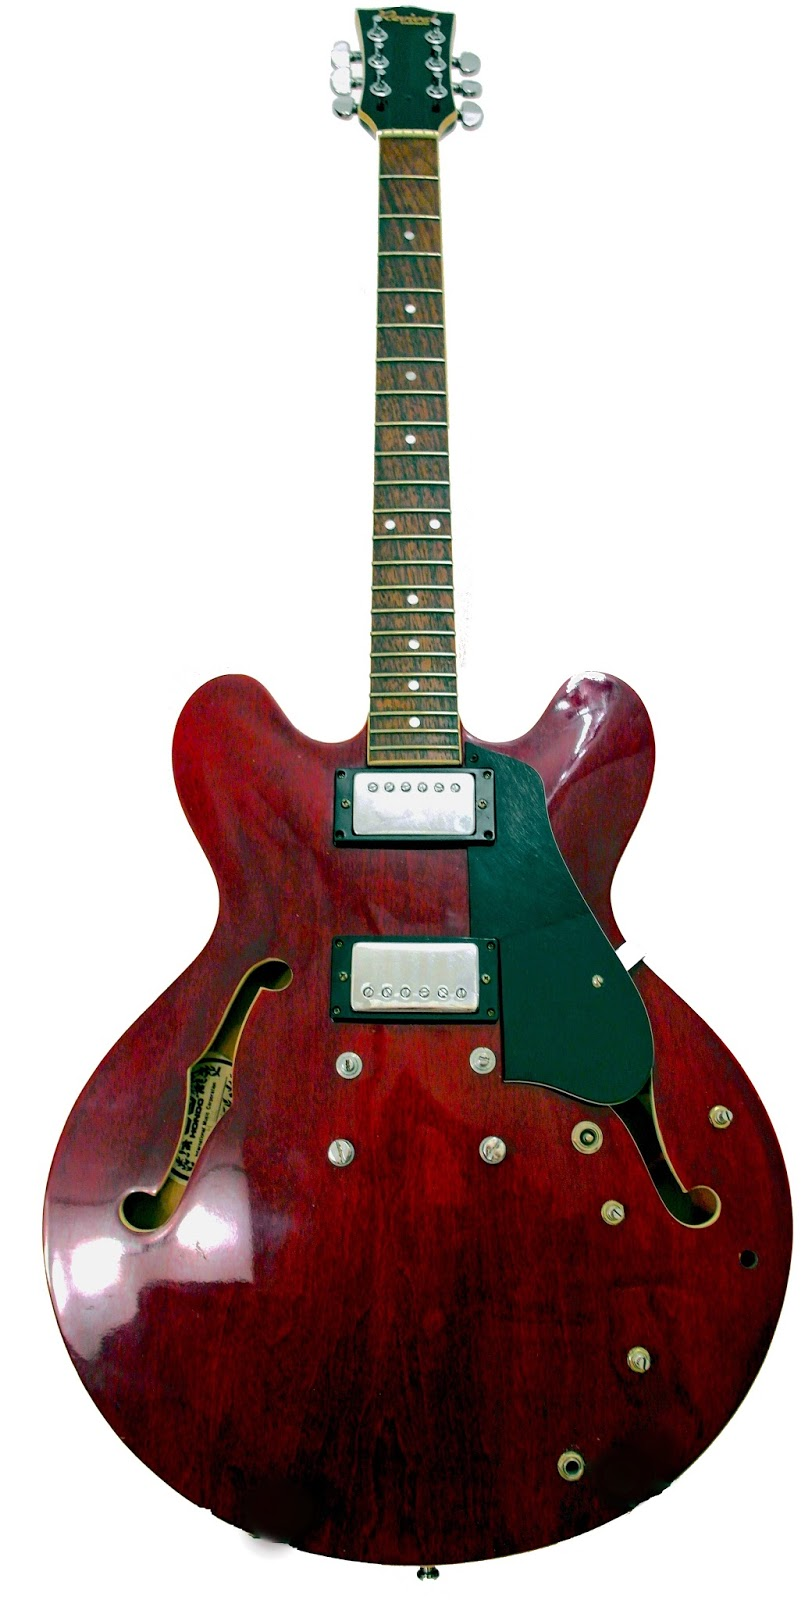 What Hondo Guitar My Knowledge Base For Guitars Melody Maker Wiring Diagrams 2 Pickups The Little Information That I Could Find At Time Was Scattered And Often Controversial Apparently 70s 80s Industry Hadnt Yet Grown To Idea